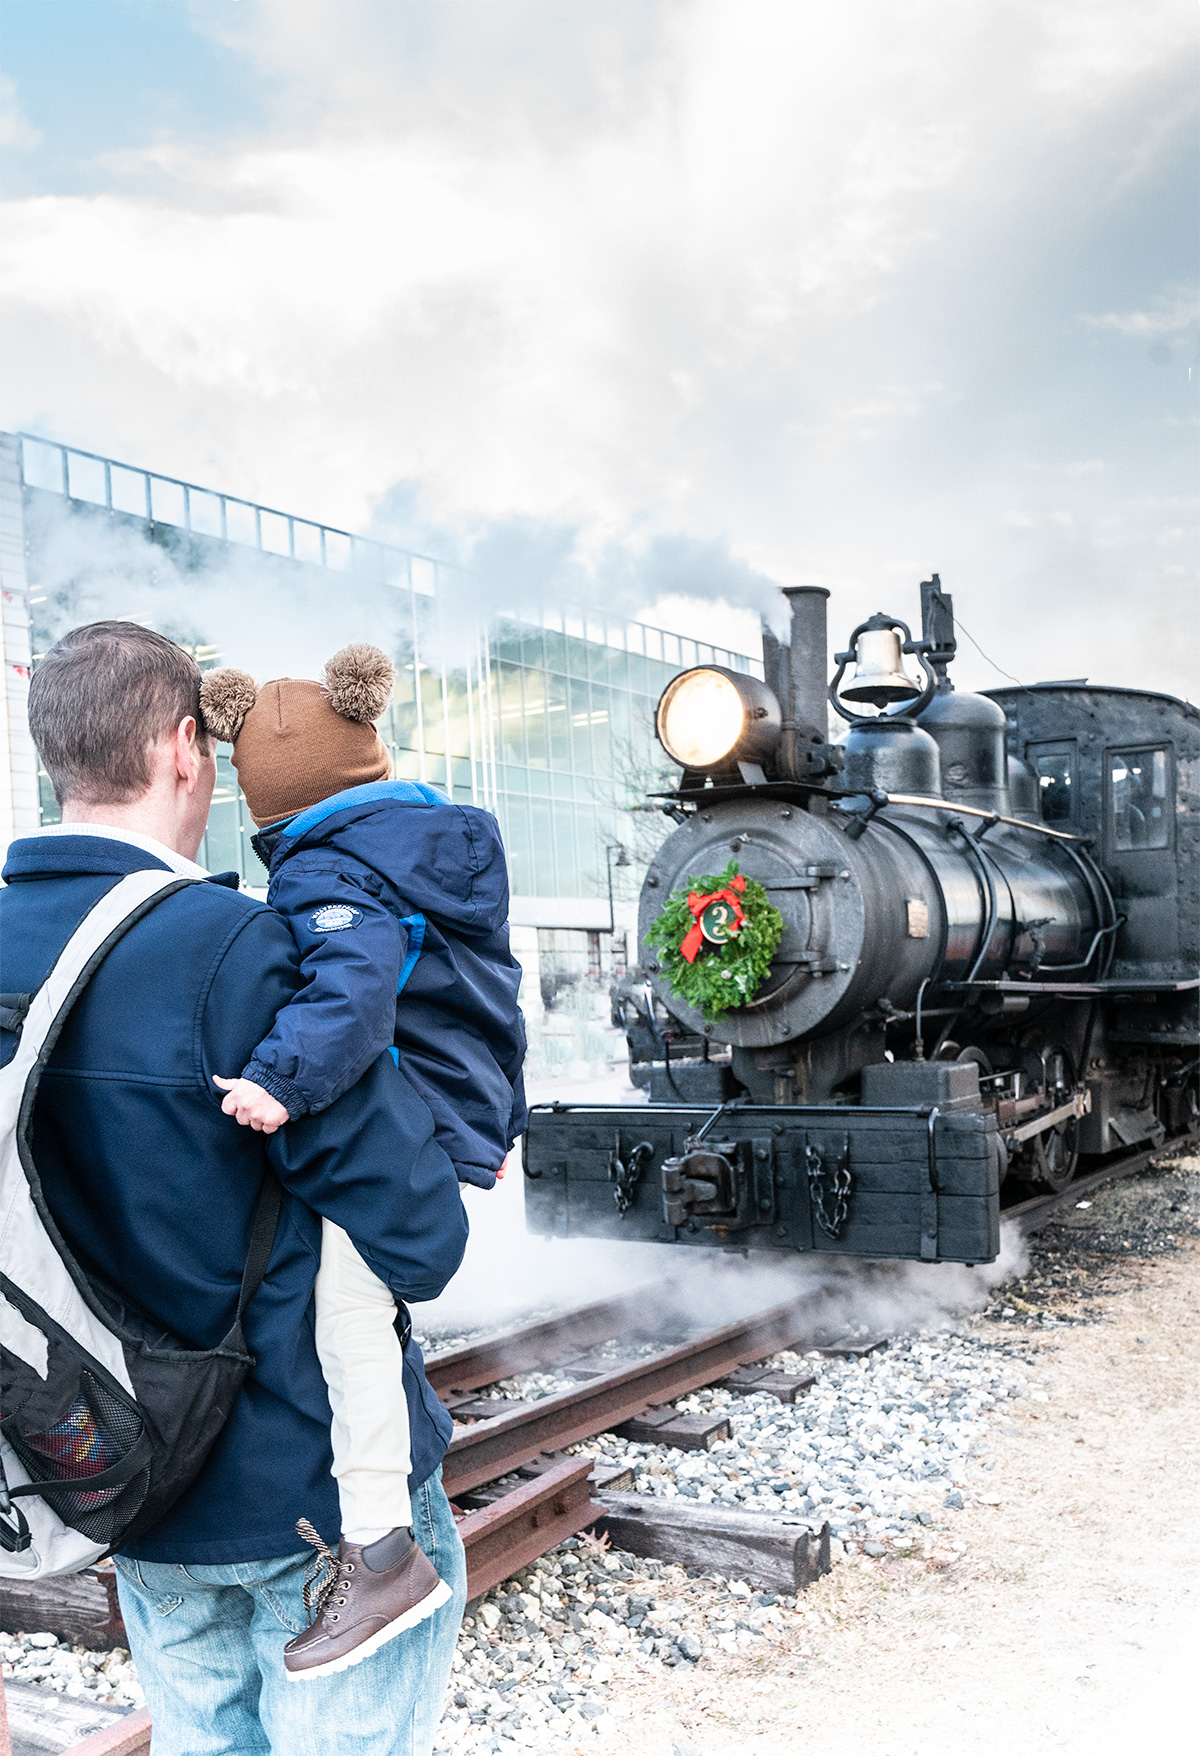 We Rode The Polar Express | Here's What Happened - Jen ...